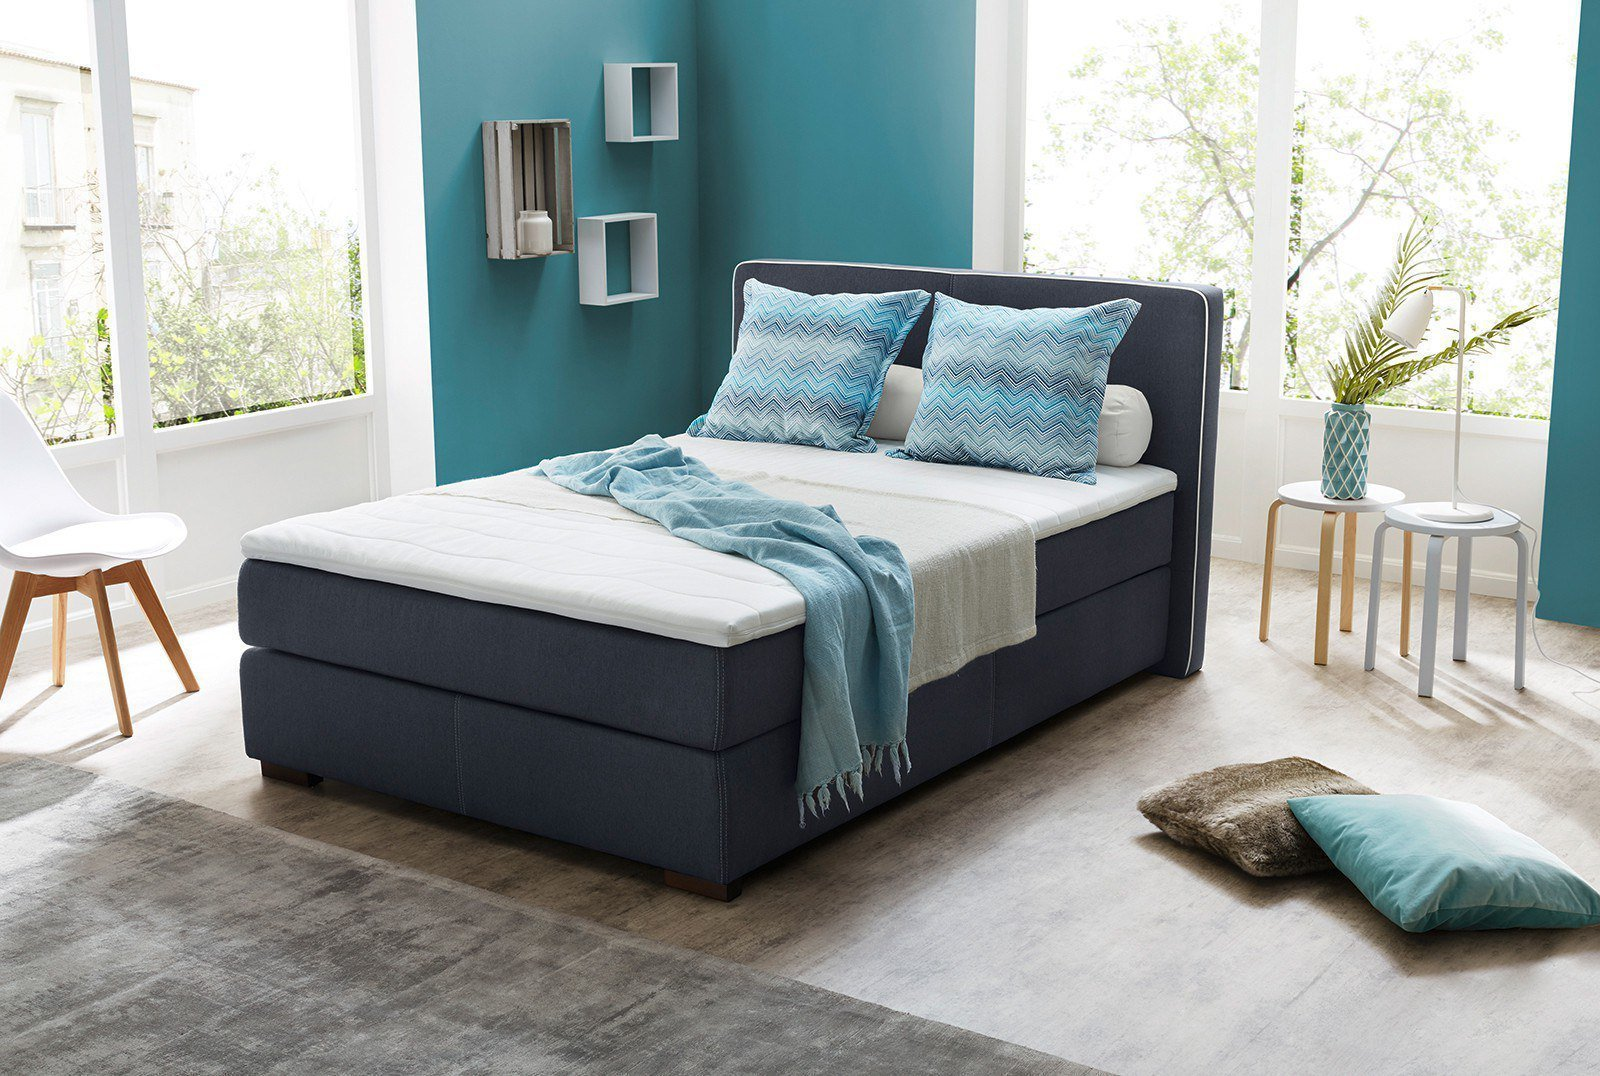 jockenh fer boxspringbett isabel in blau mit dunklen. Black Bedroom Furniture Sets. Home Design Ideas